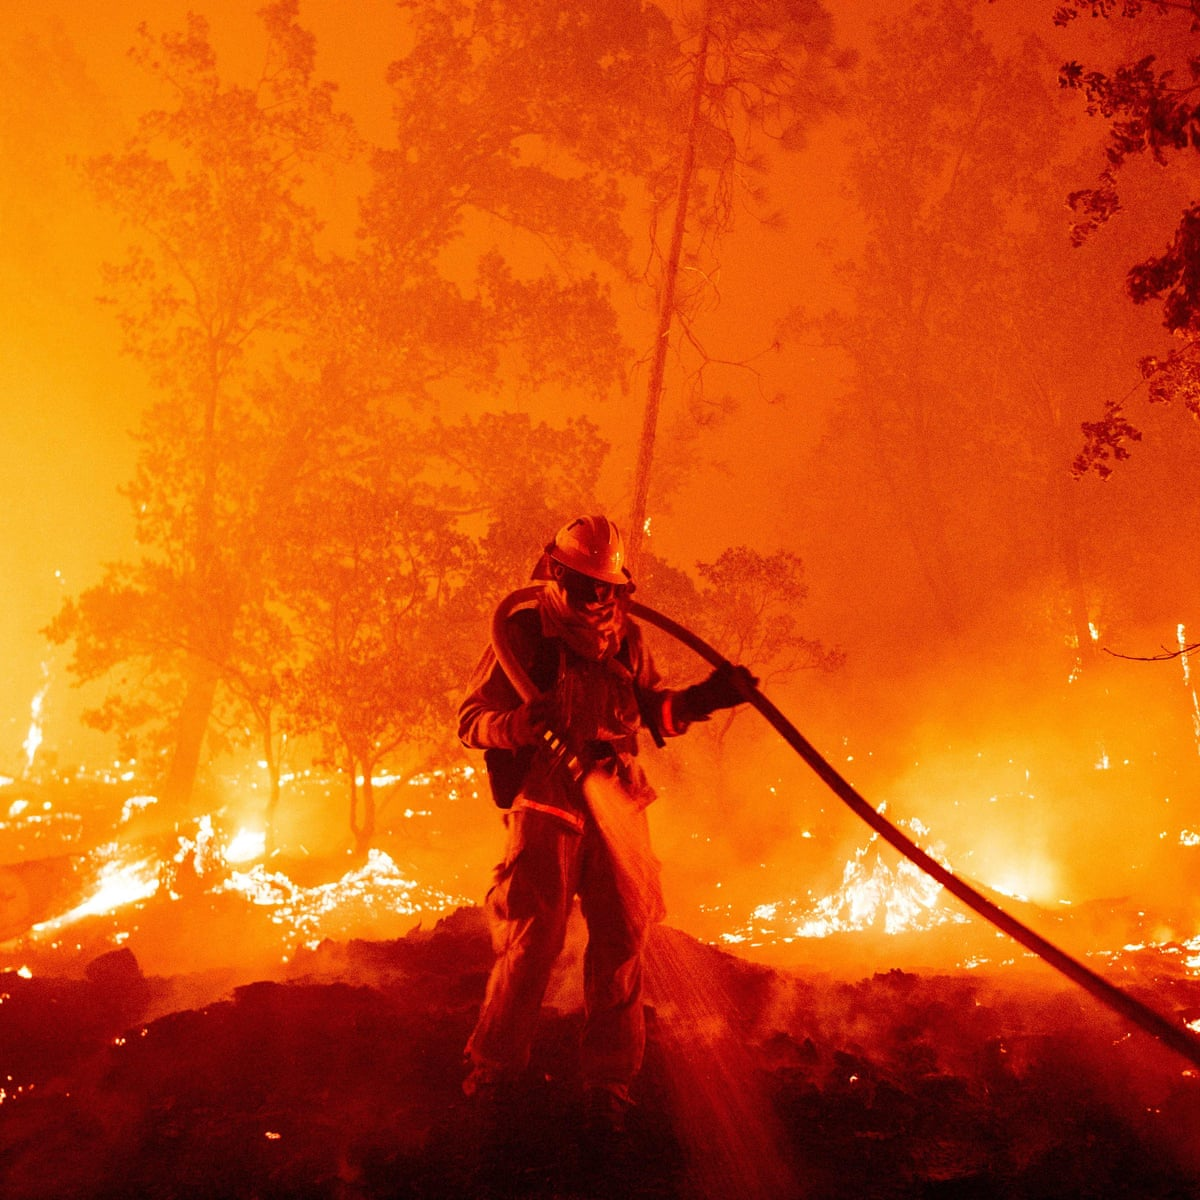 California fires burn record 2m acres | US news | The Guardian